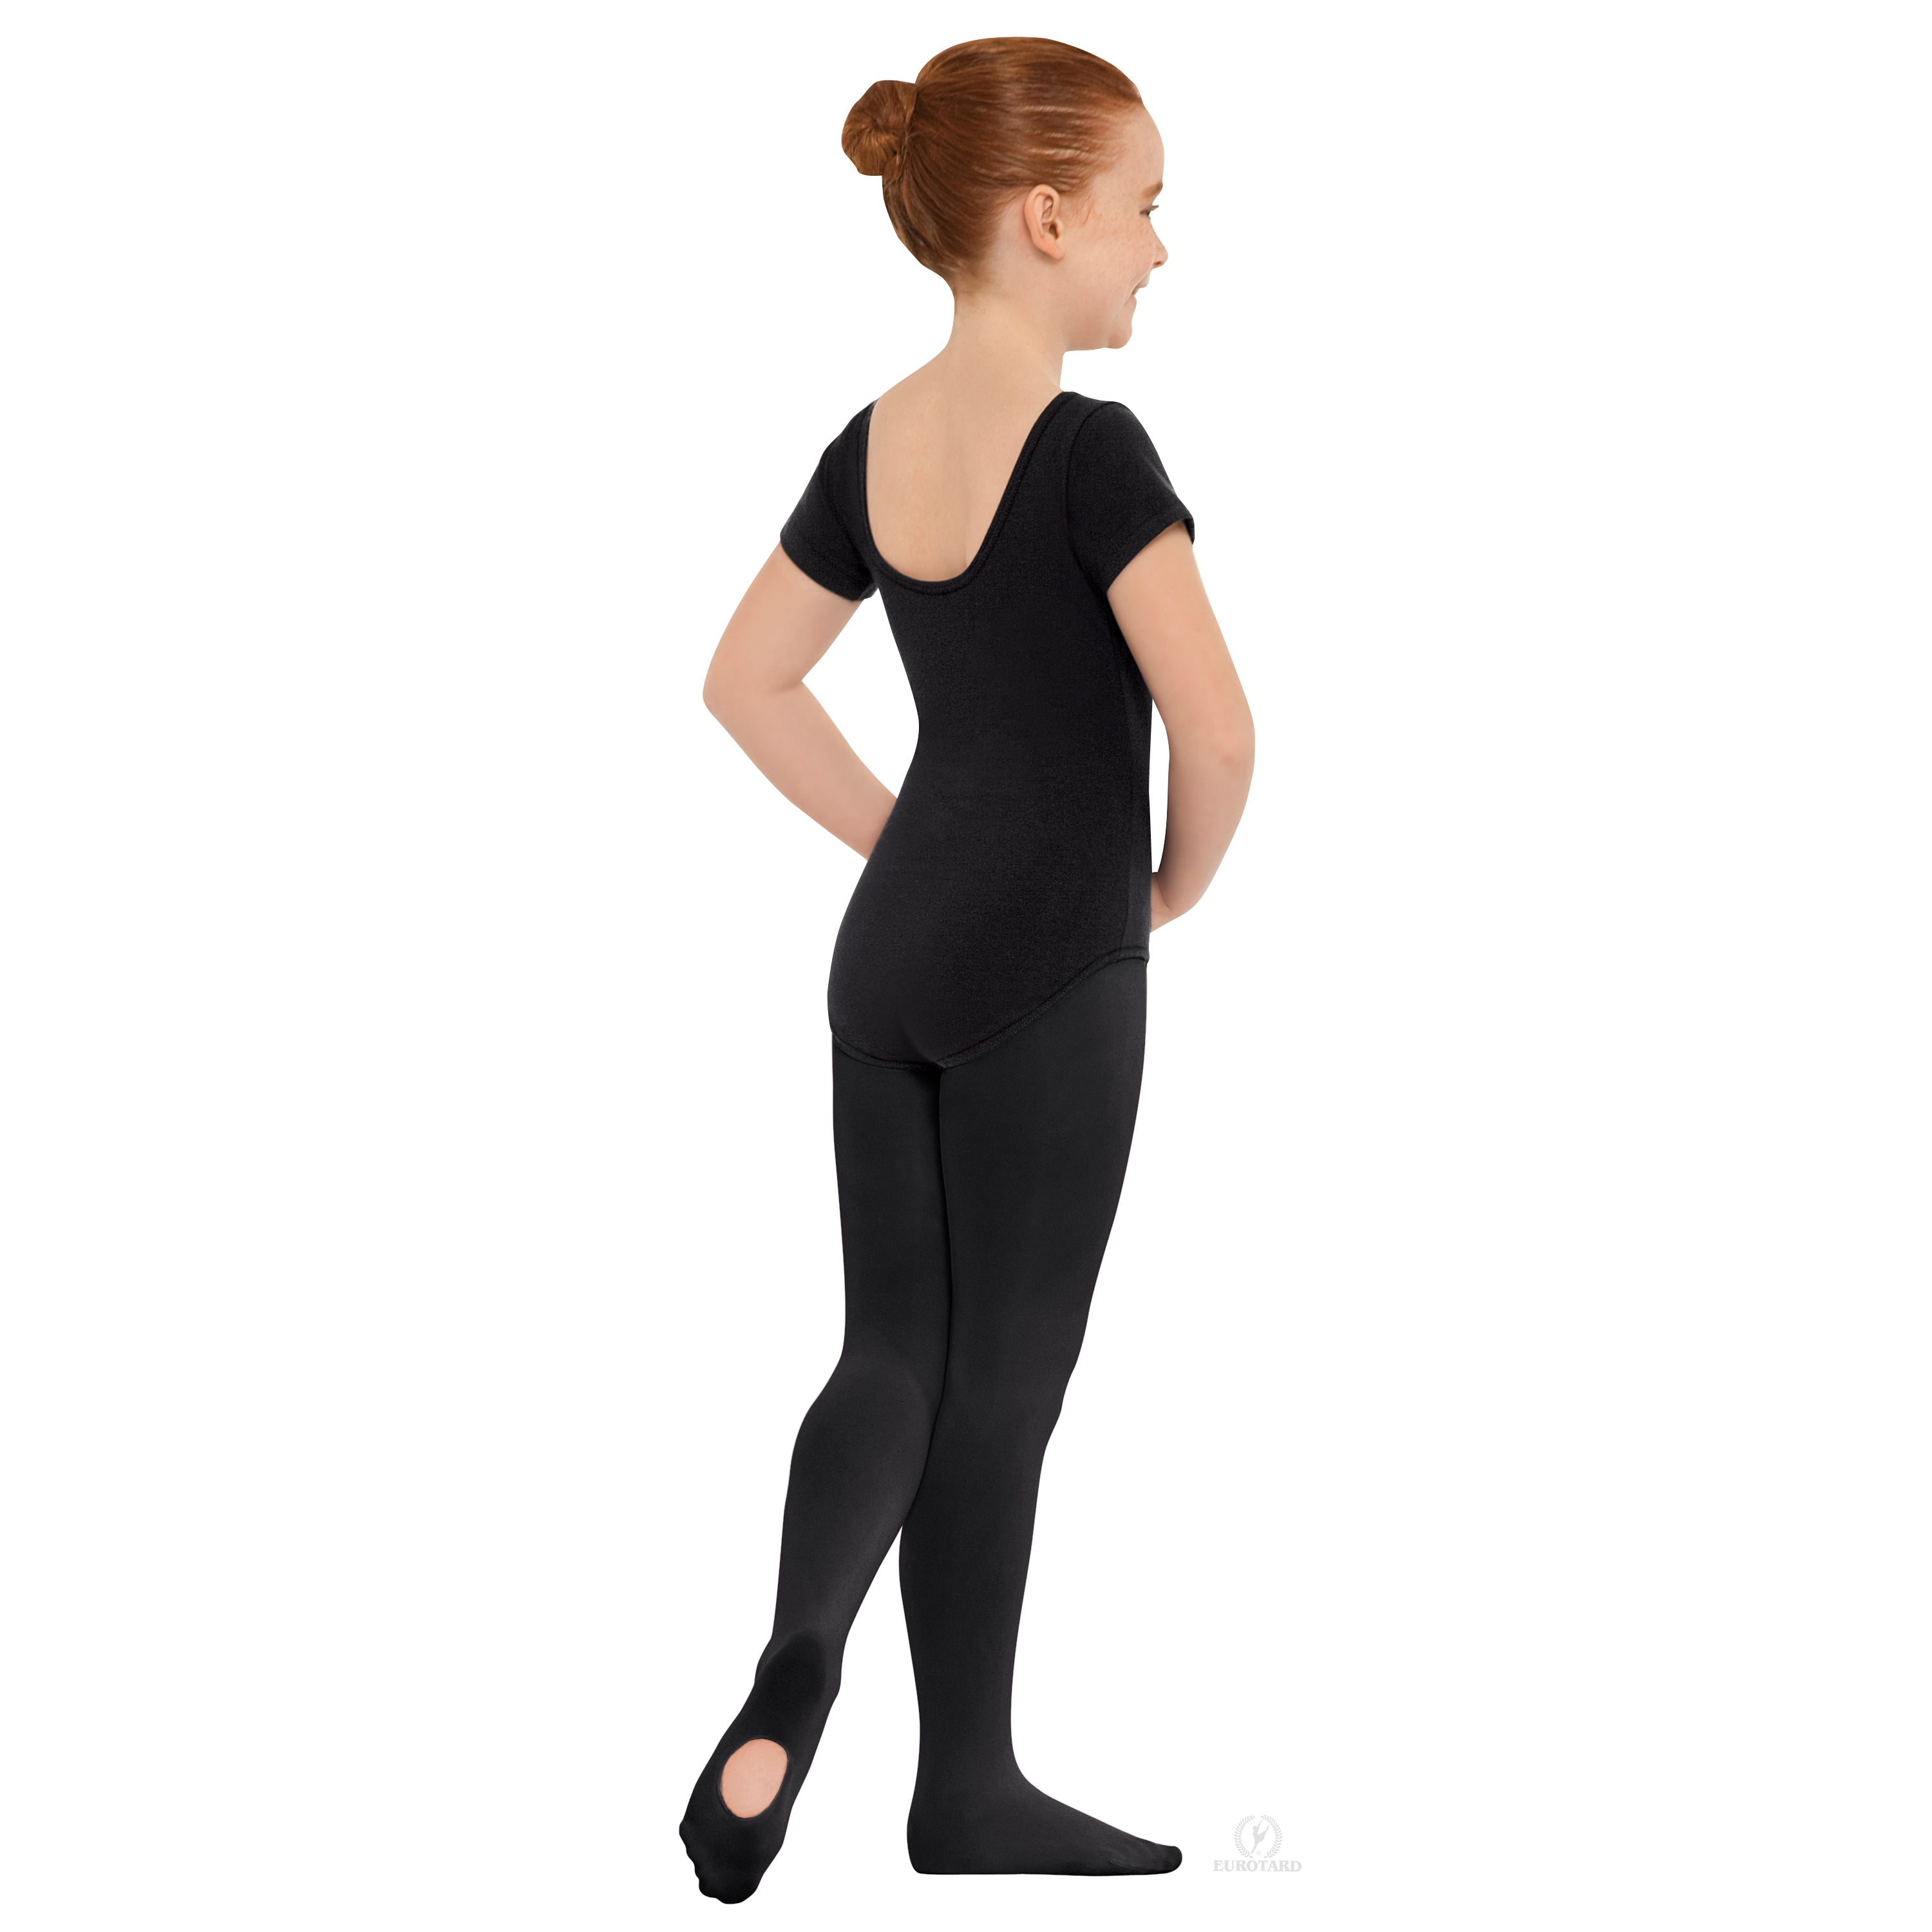 210c Child Non-Run Convertible Tights by EuroSkins